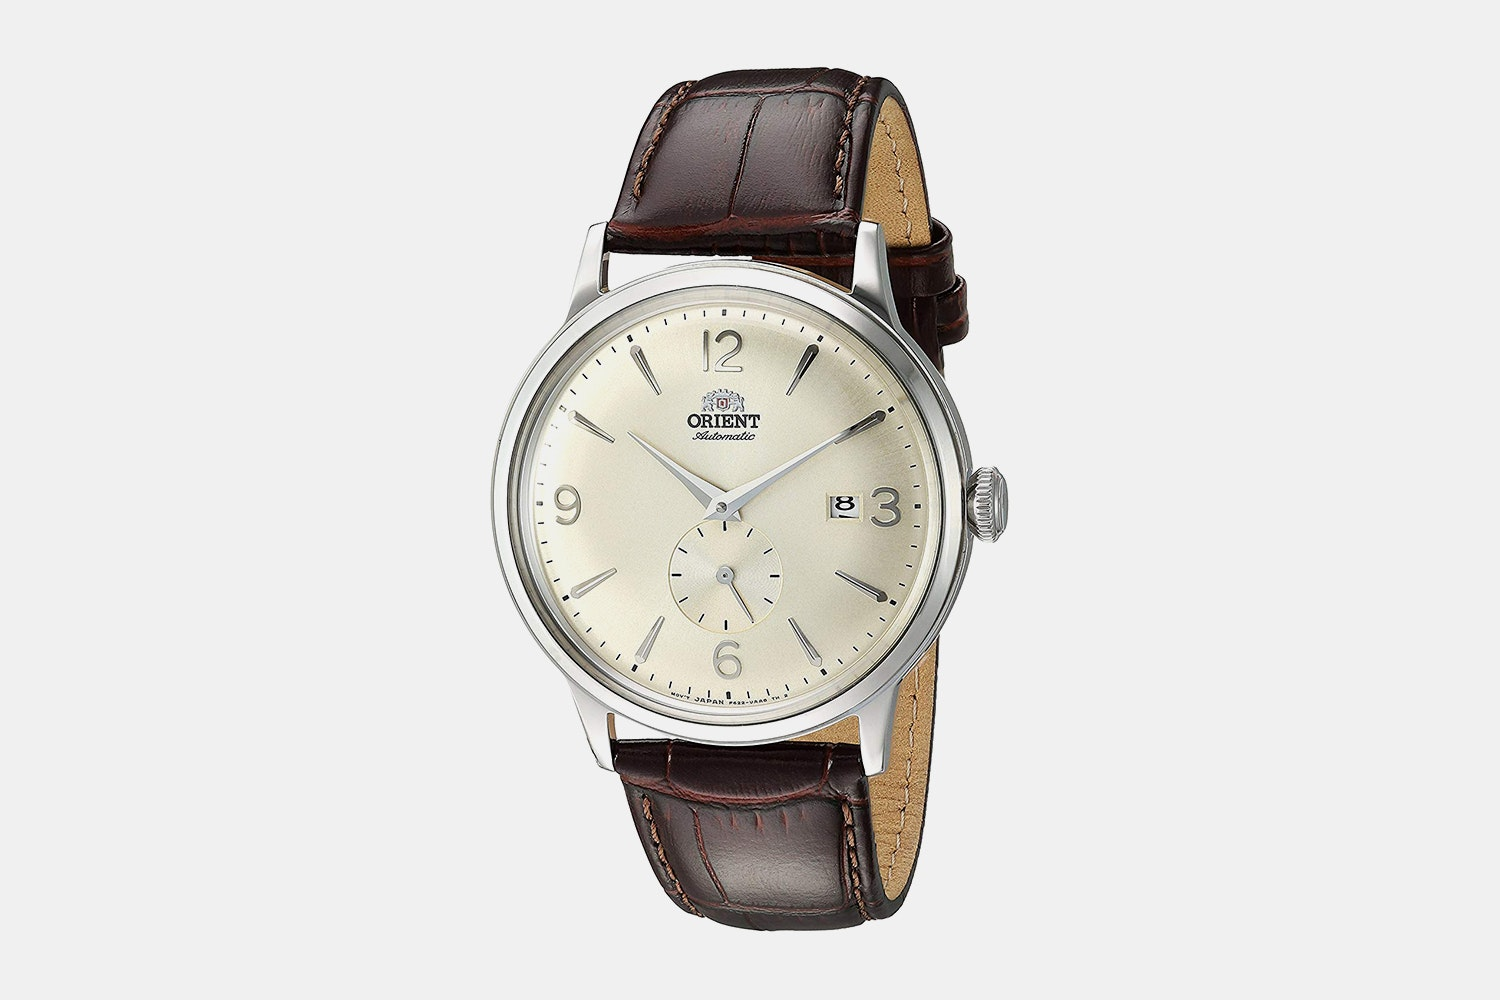 Orient Bambino Small Seconds Automatic Watch